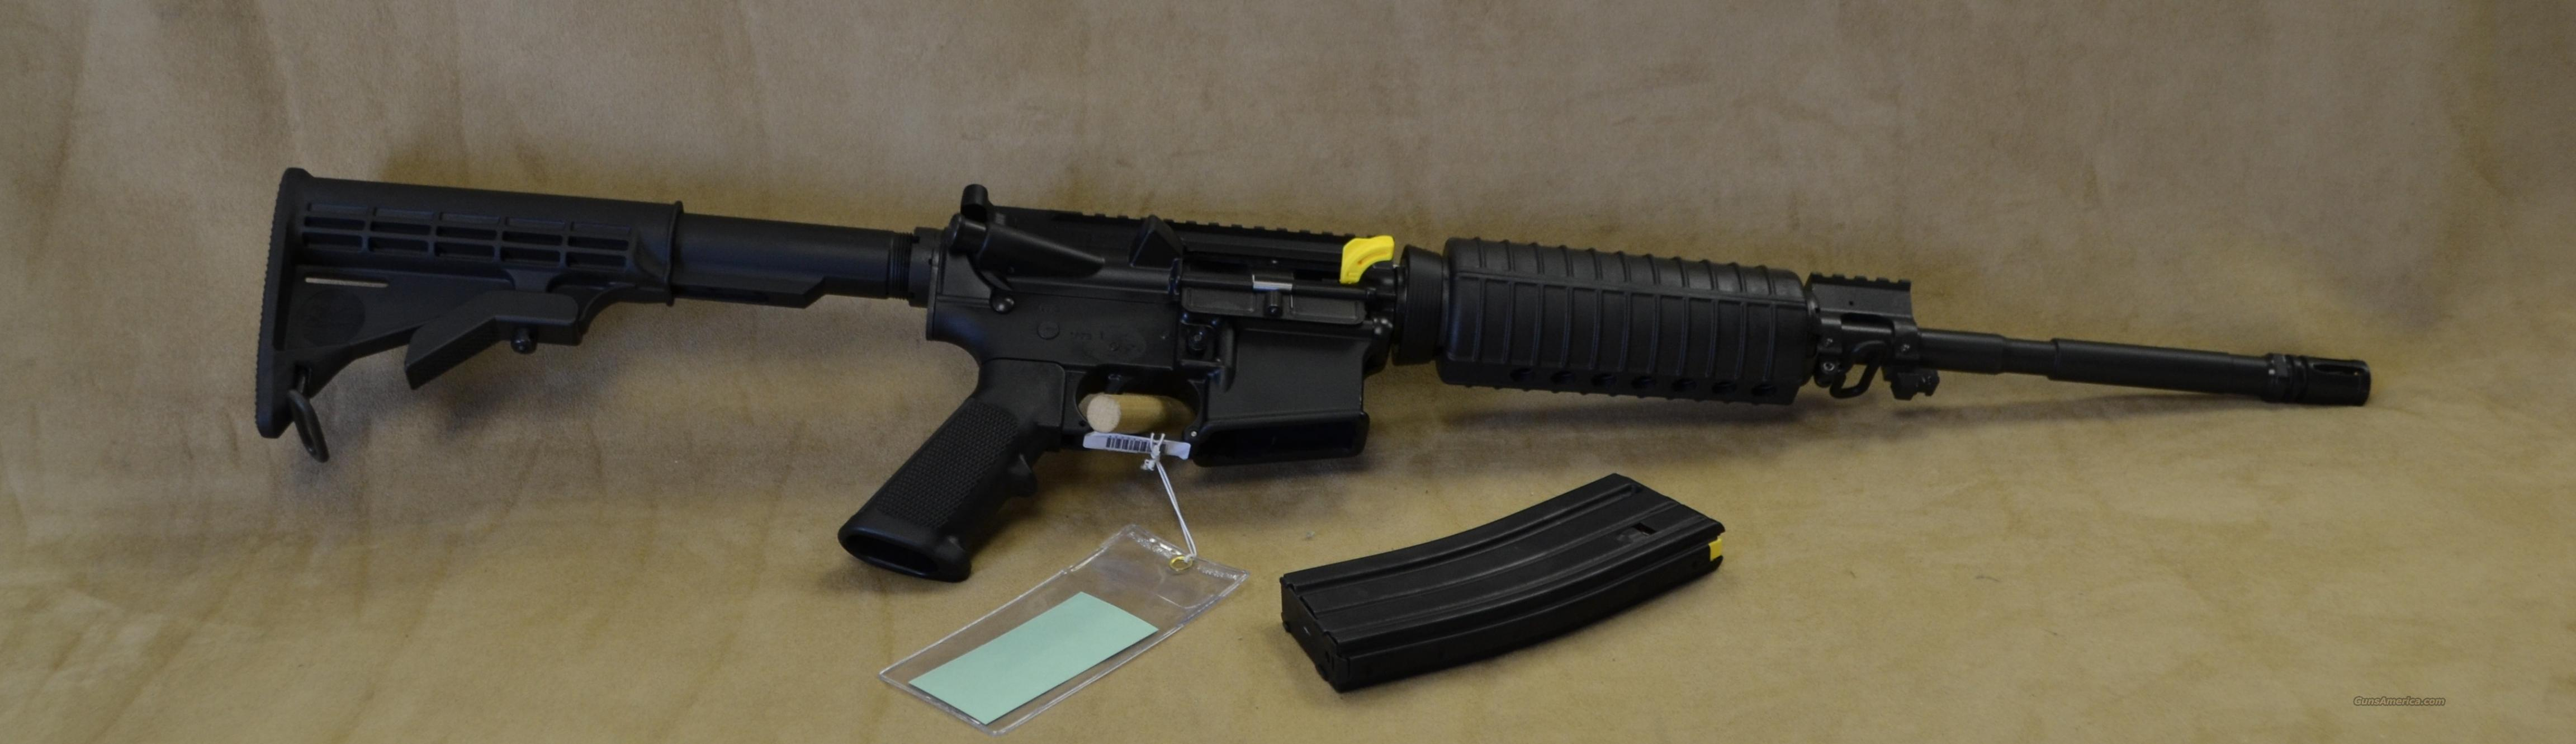 SALE R16M4FTT Windham Weaponry M4 SRC - 223 Rem/5.56  Guns > Rifles > Windham Weaponry Rifles